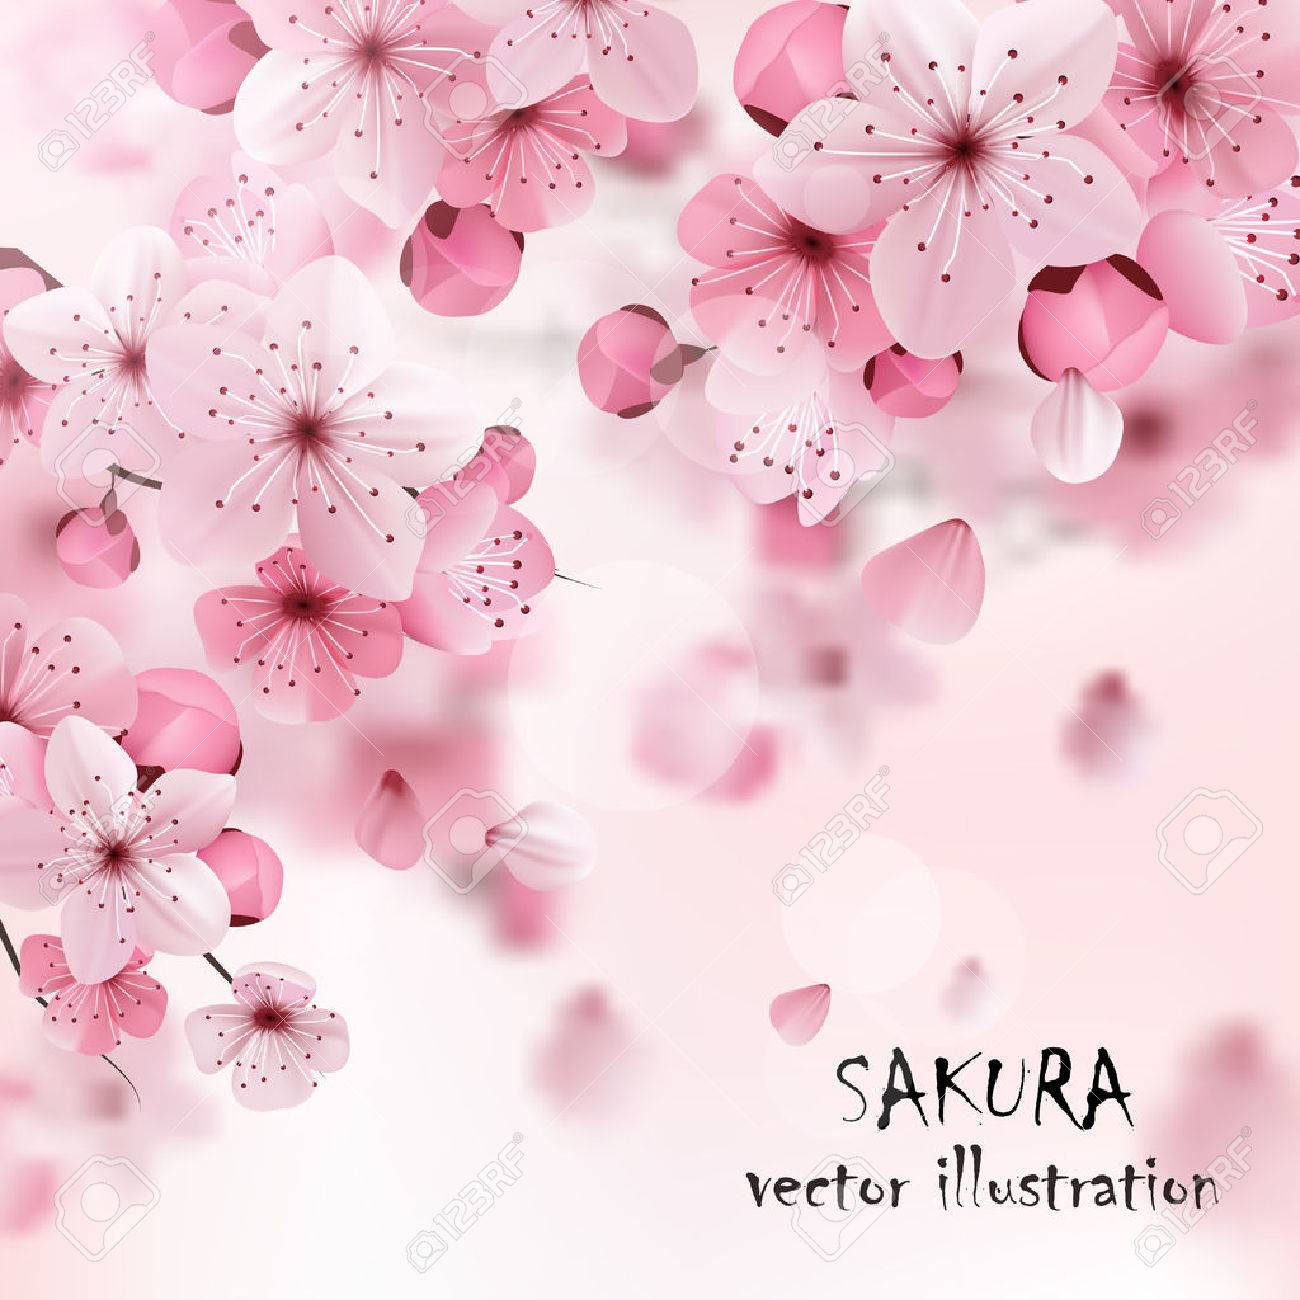 Beautiful print with blossoming dark and light pink sakura flowers beautiful print with blossoming dark and light pink sakura flowers and title vector illustration stock vector dhlflorist Images